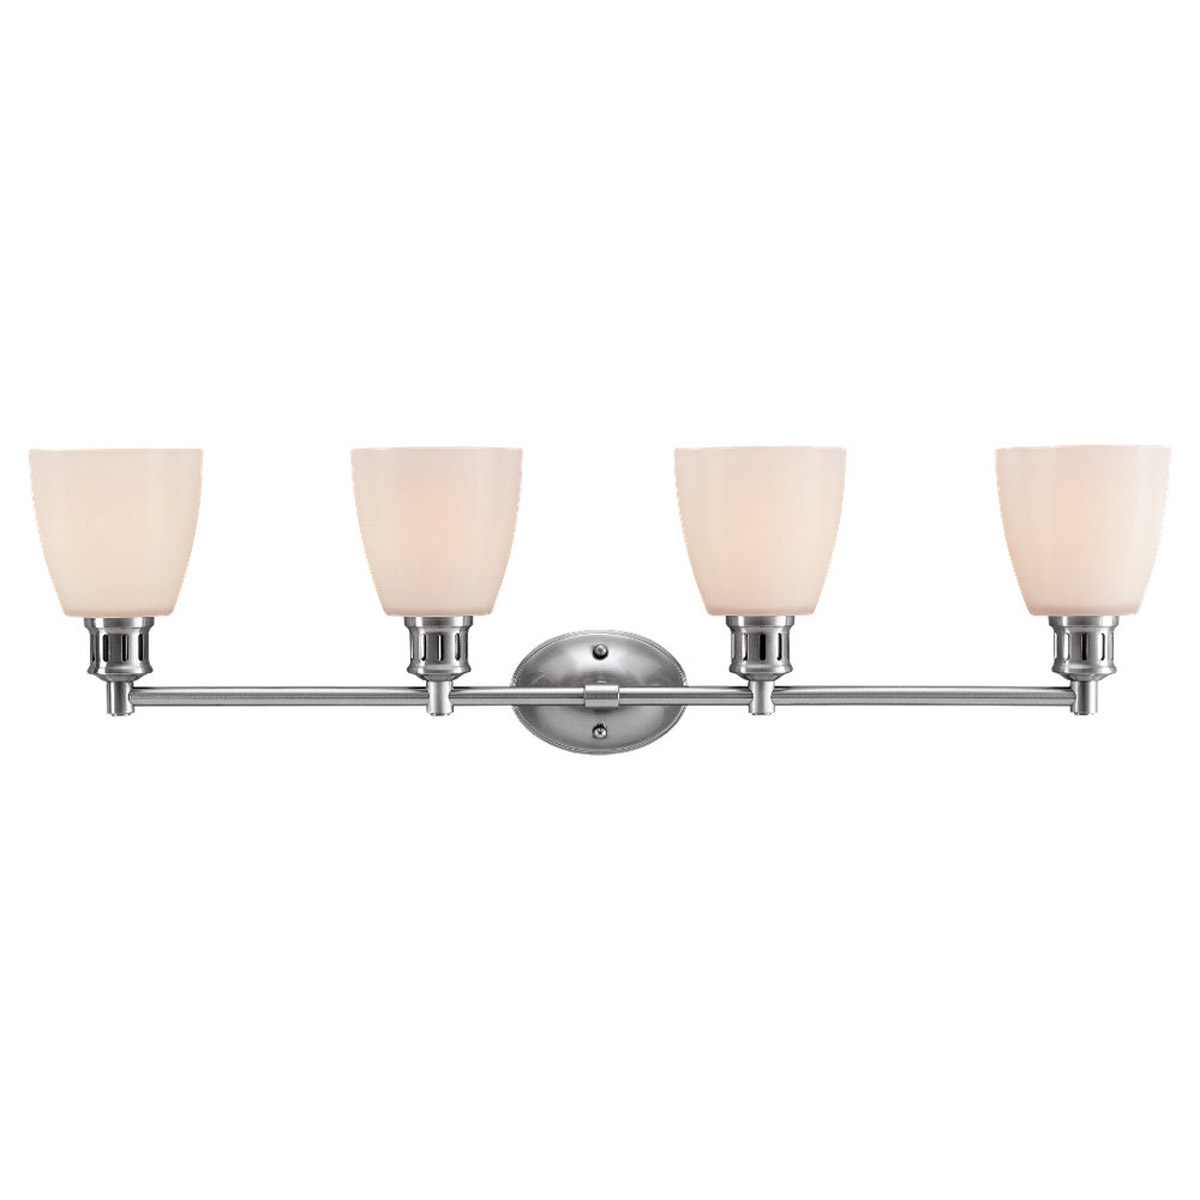 Sea Gull Lighting Century 4 Light Bath Vanity in Brushed Nickel 44476-962 photo